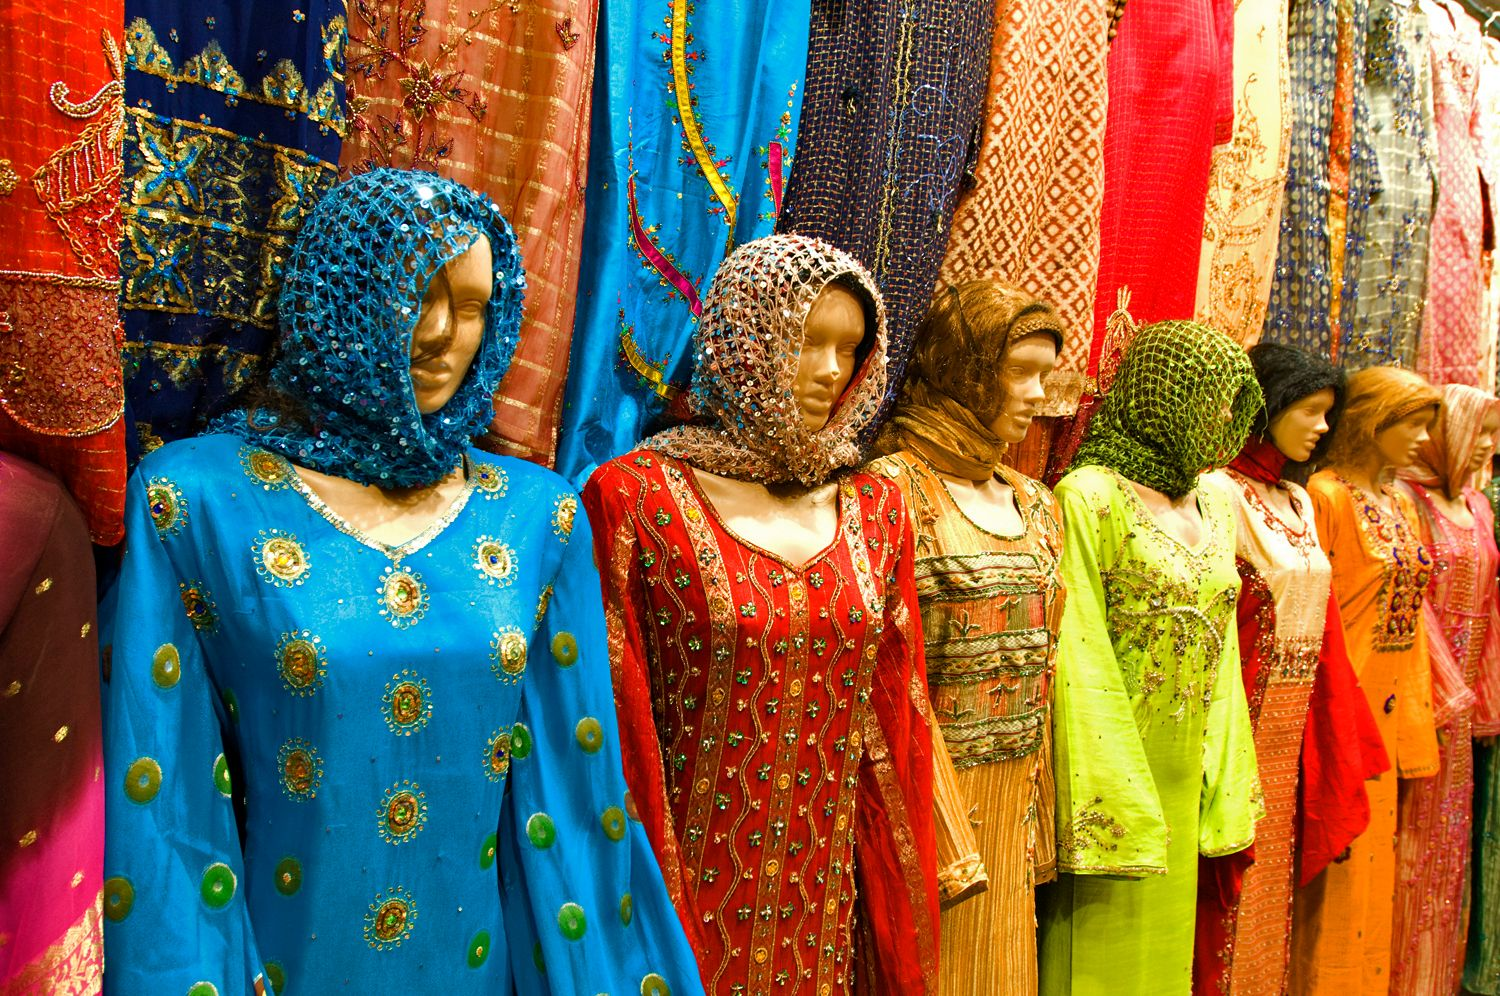 Female Mannequins Wearing Head Scarfs